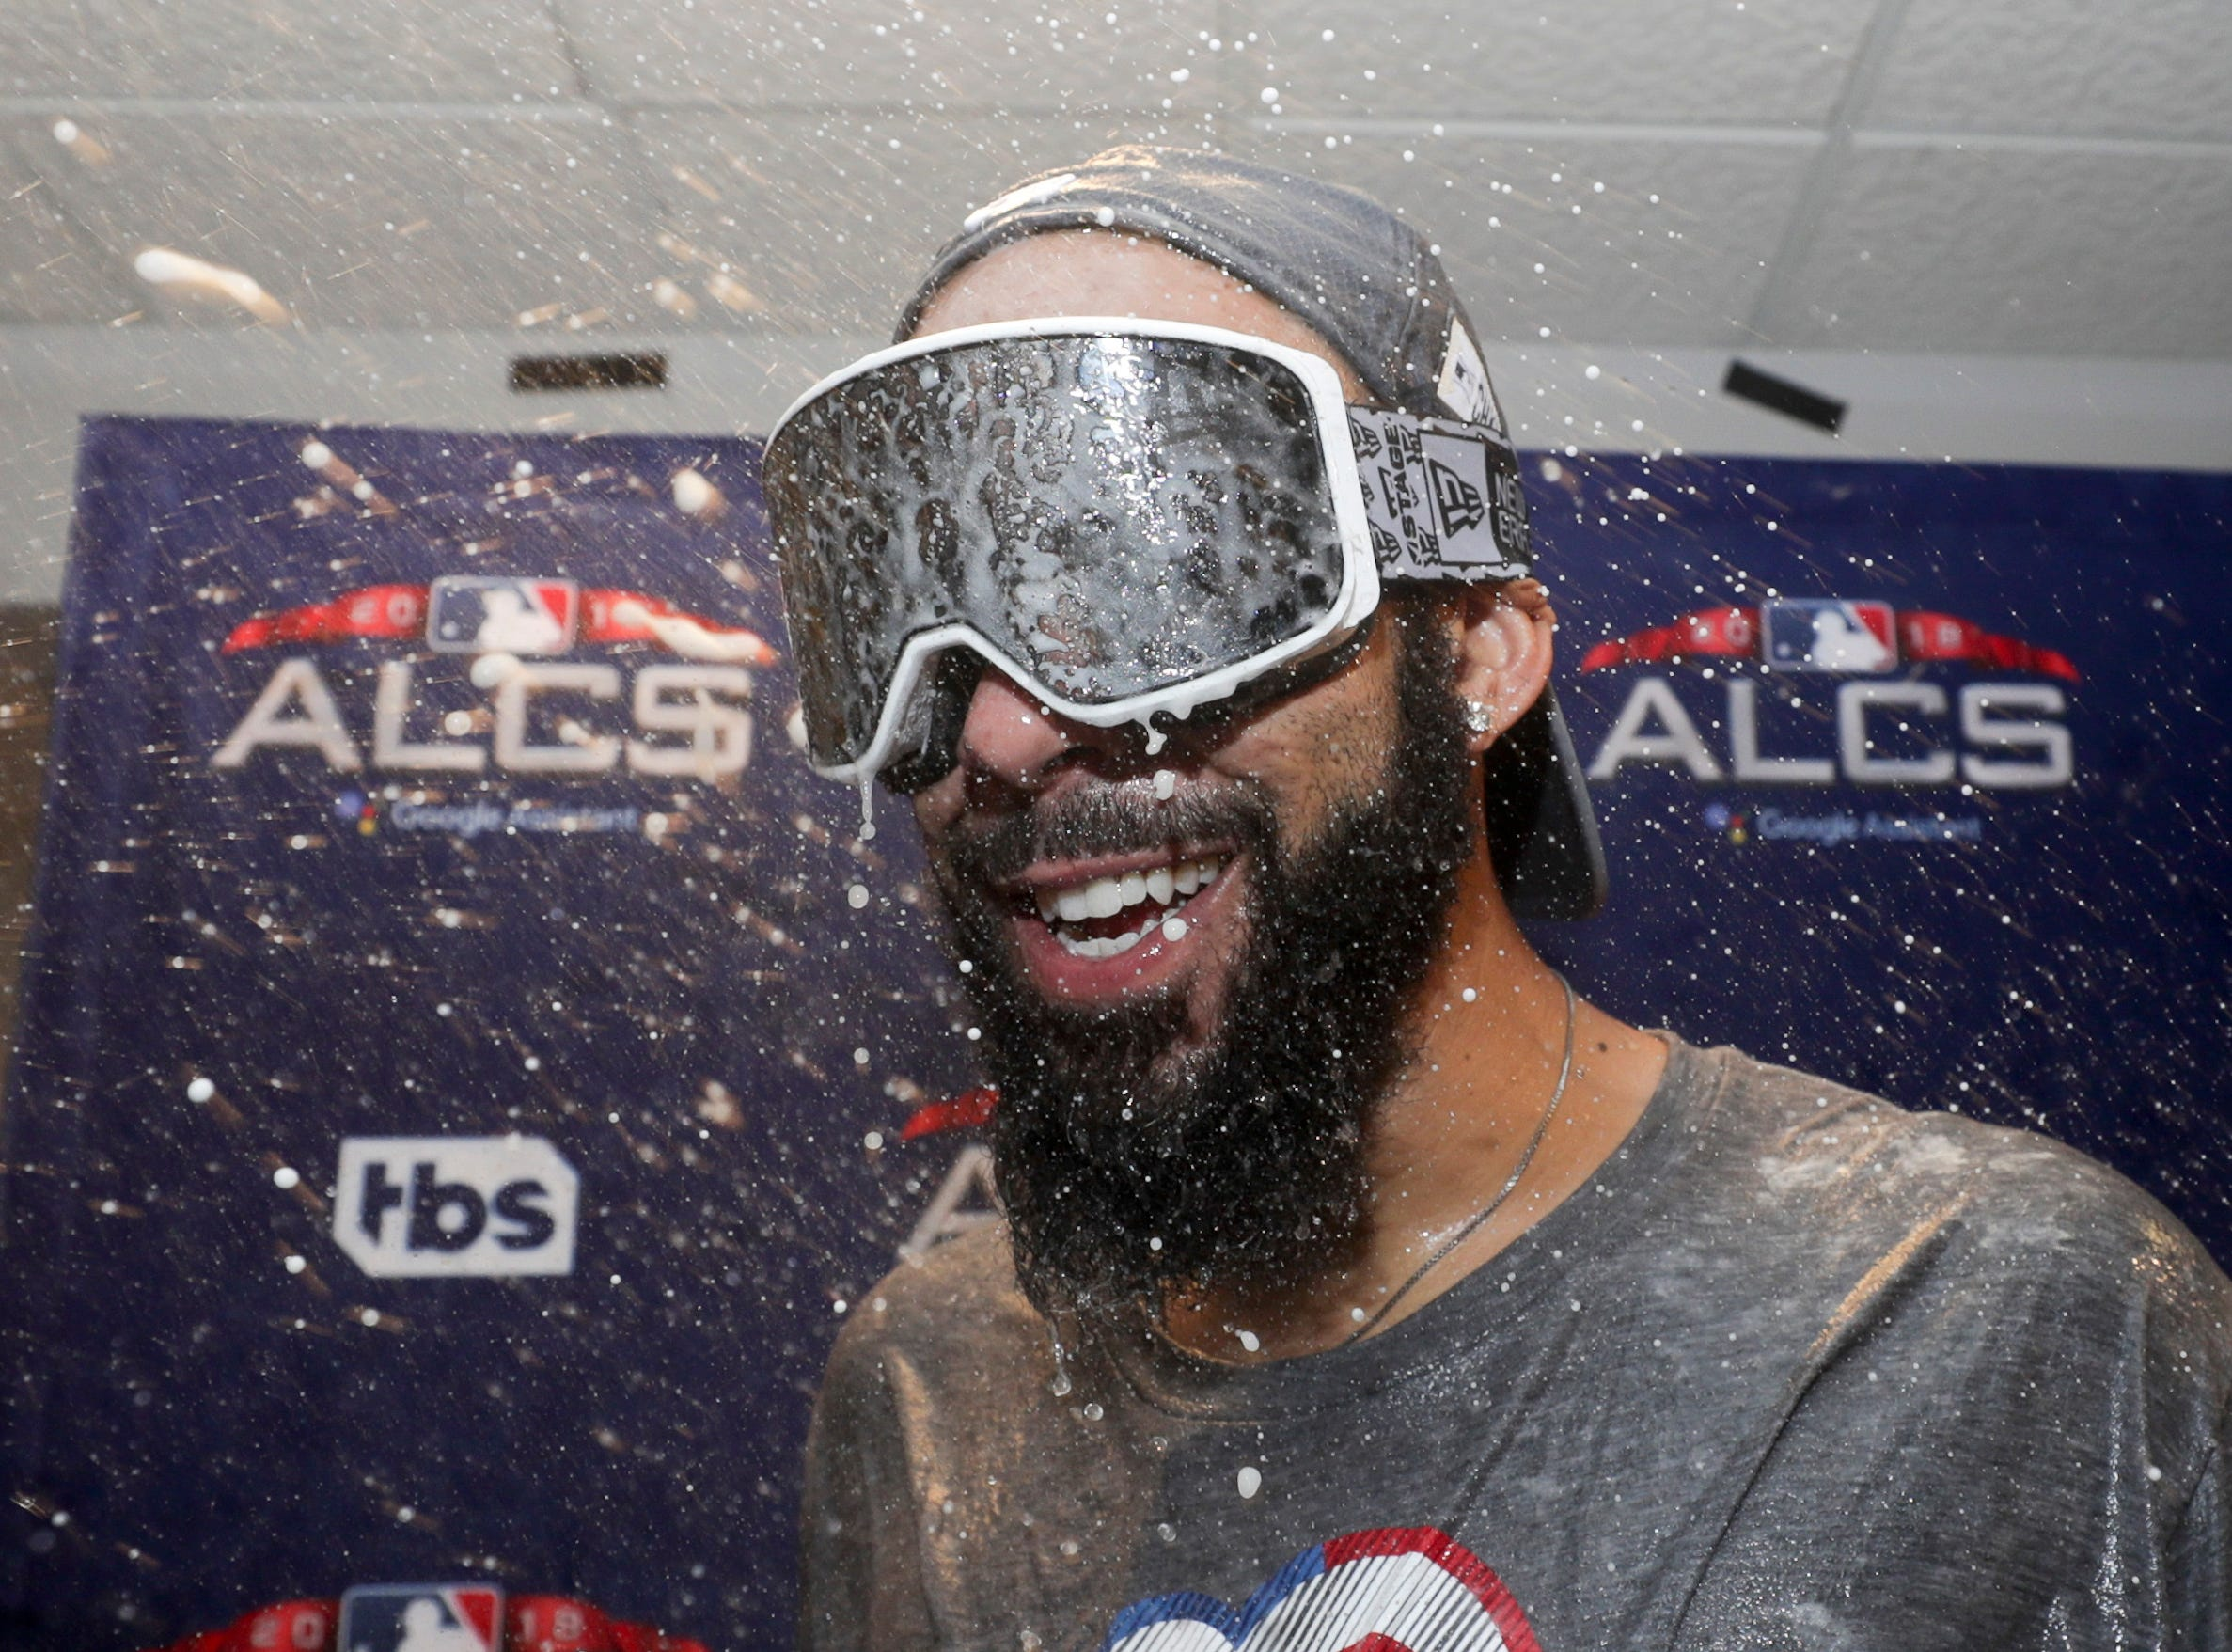 Boston Red Sox starting pitcher David Price celebrates after winning the American League Championship Series against the Houston Astros on Thursday, Oct. 18, 2018, in Houston.